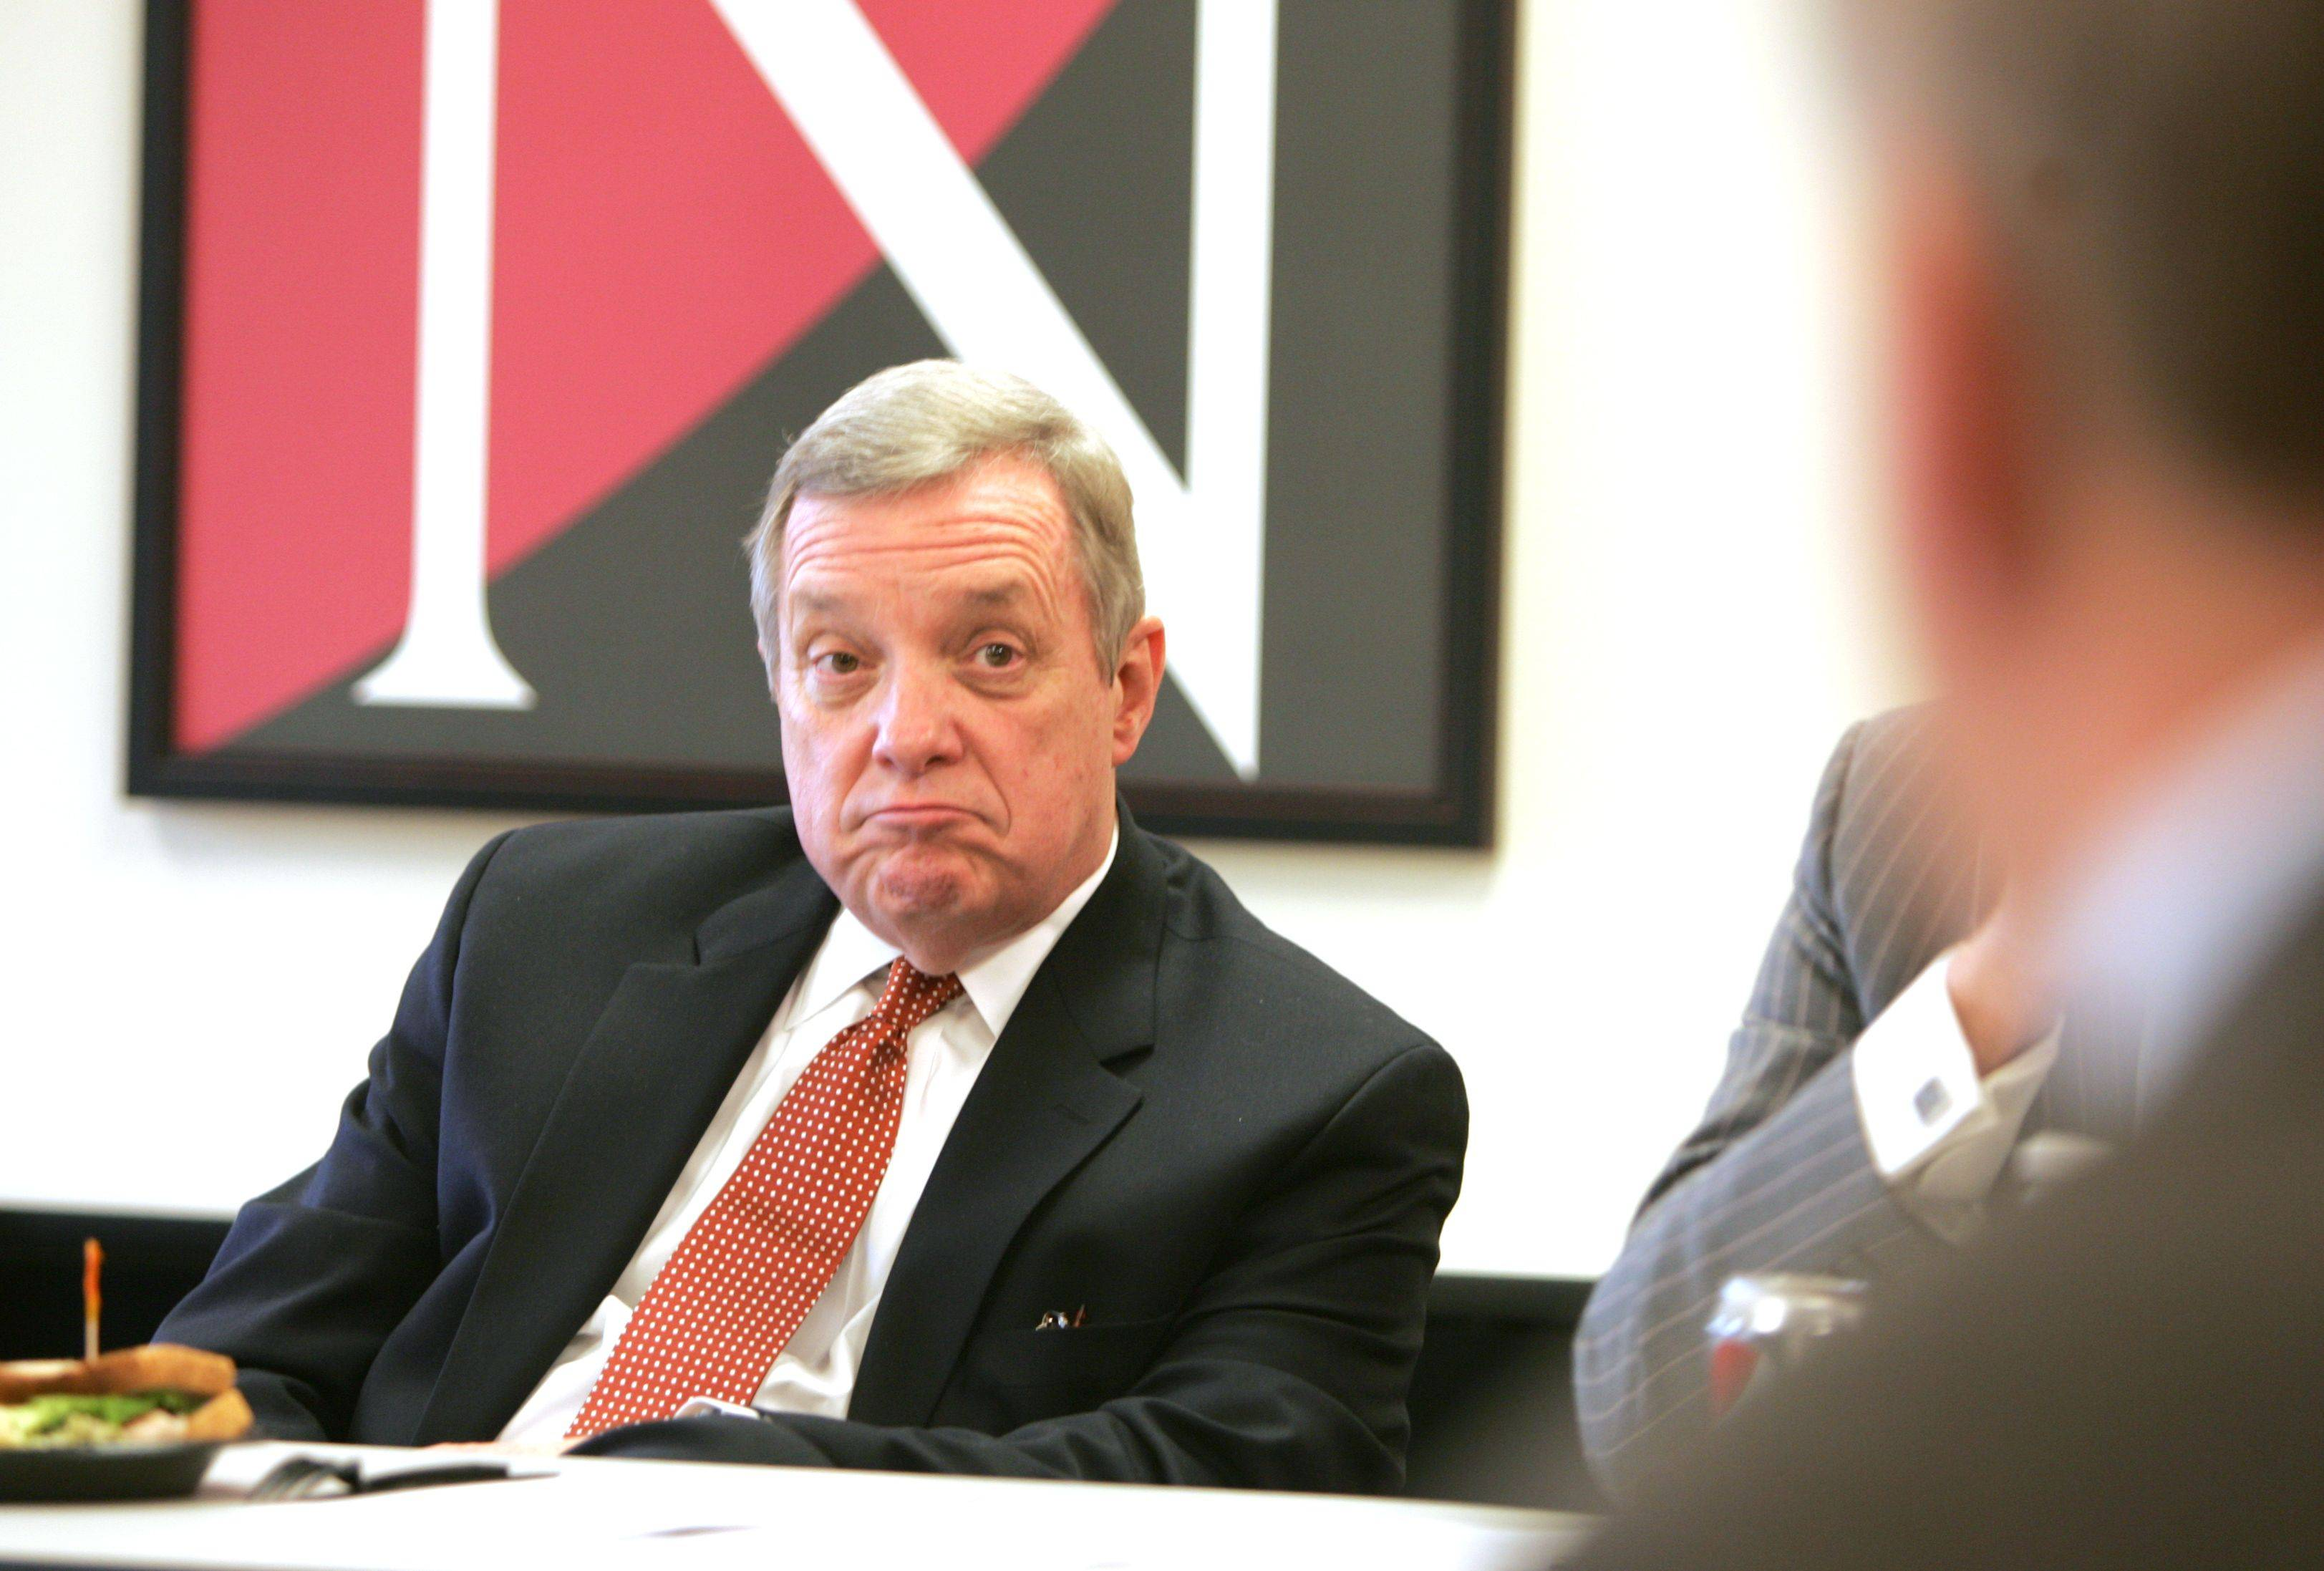 Sen. Dick Durbin met with local business owners to discuss how the federal government can help them succeed.